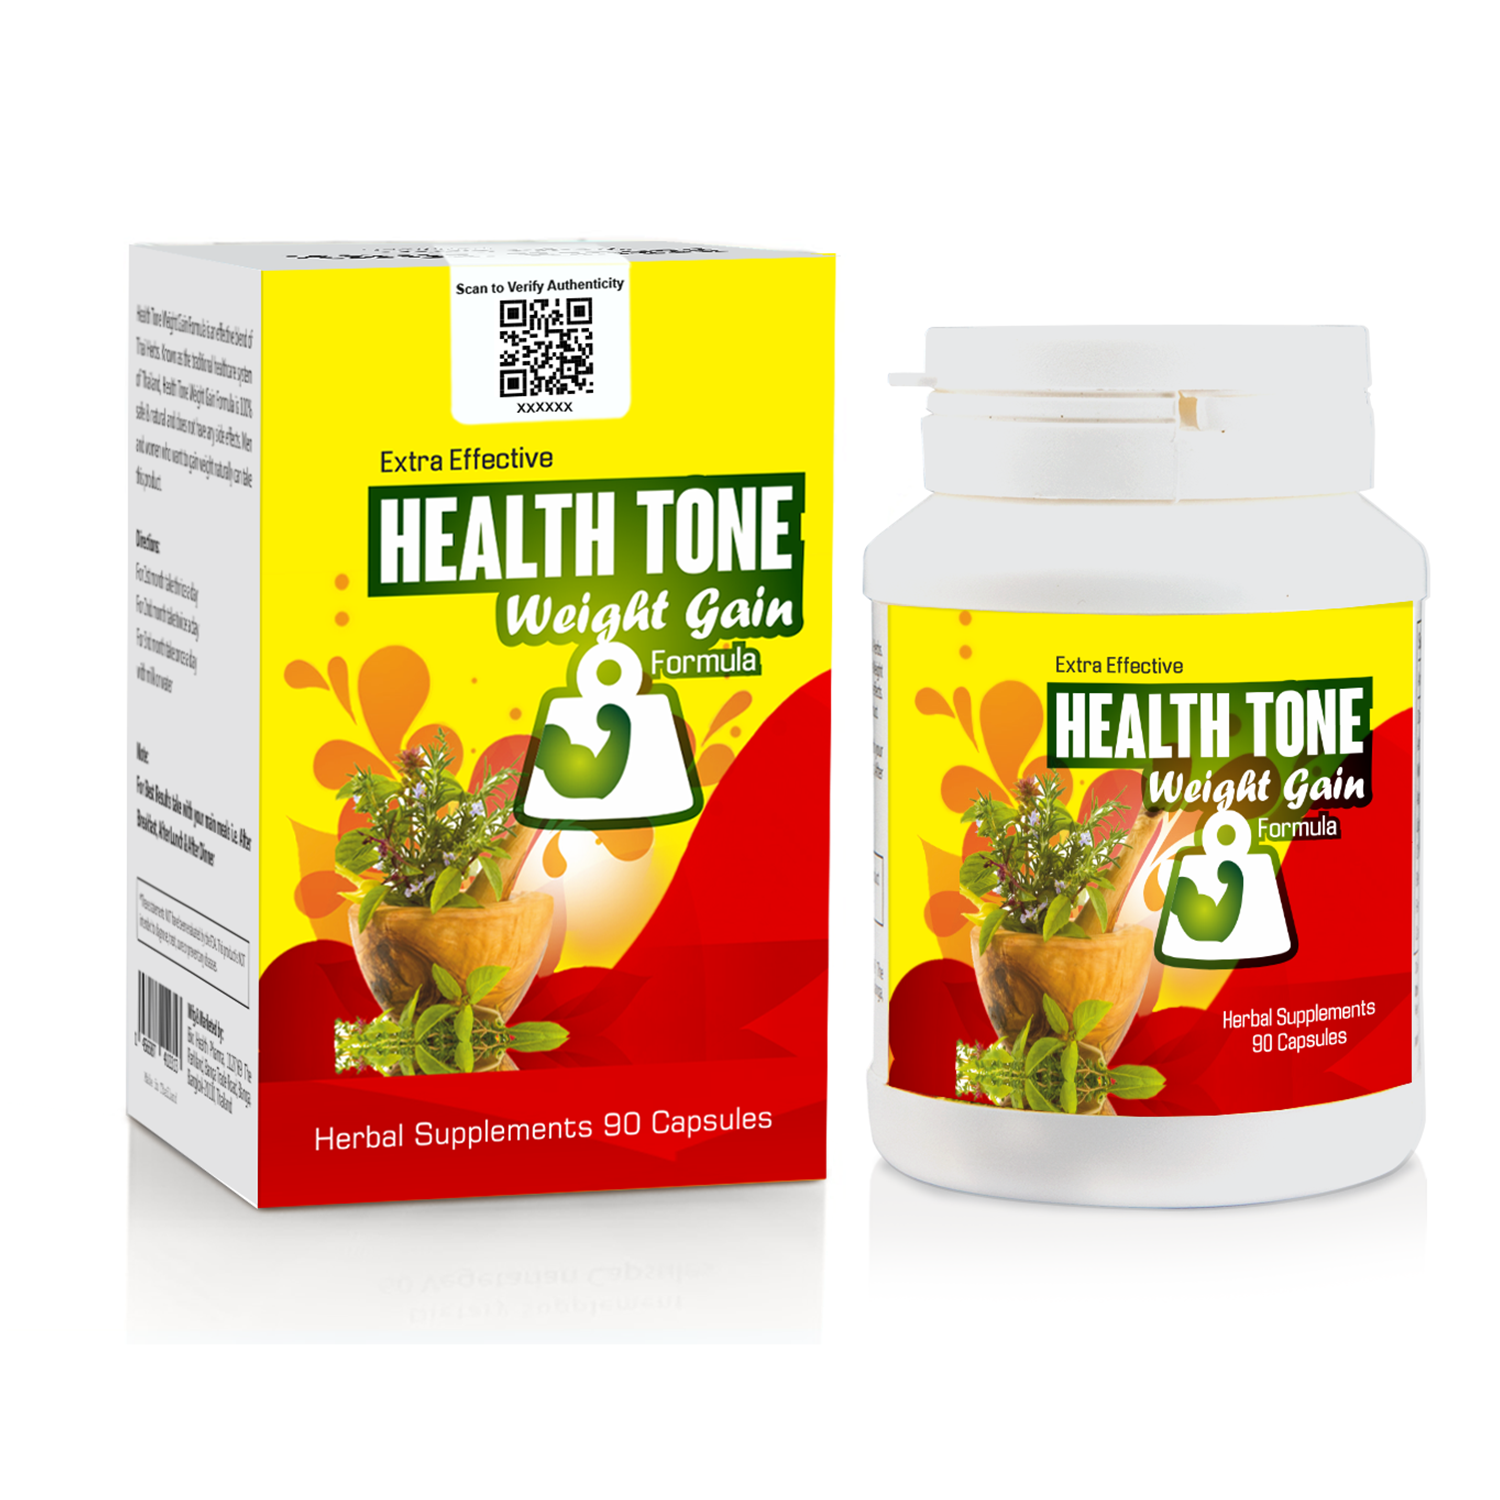 Extra Effective Health tone Weight Gain Capsule